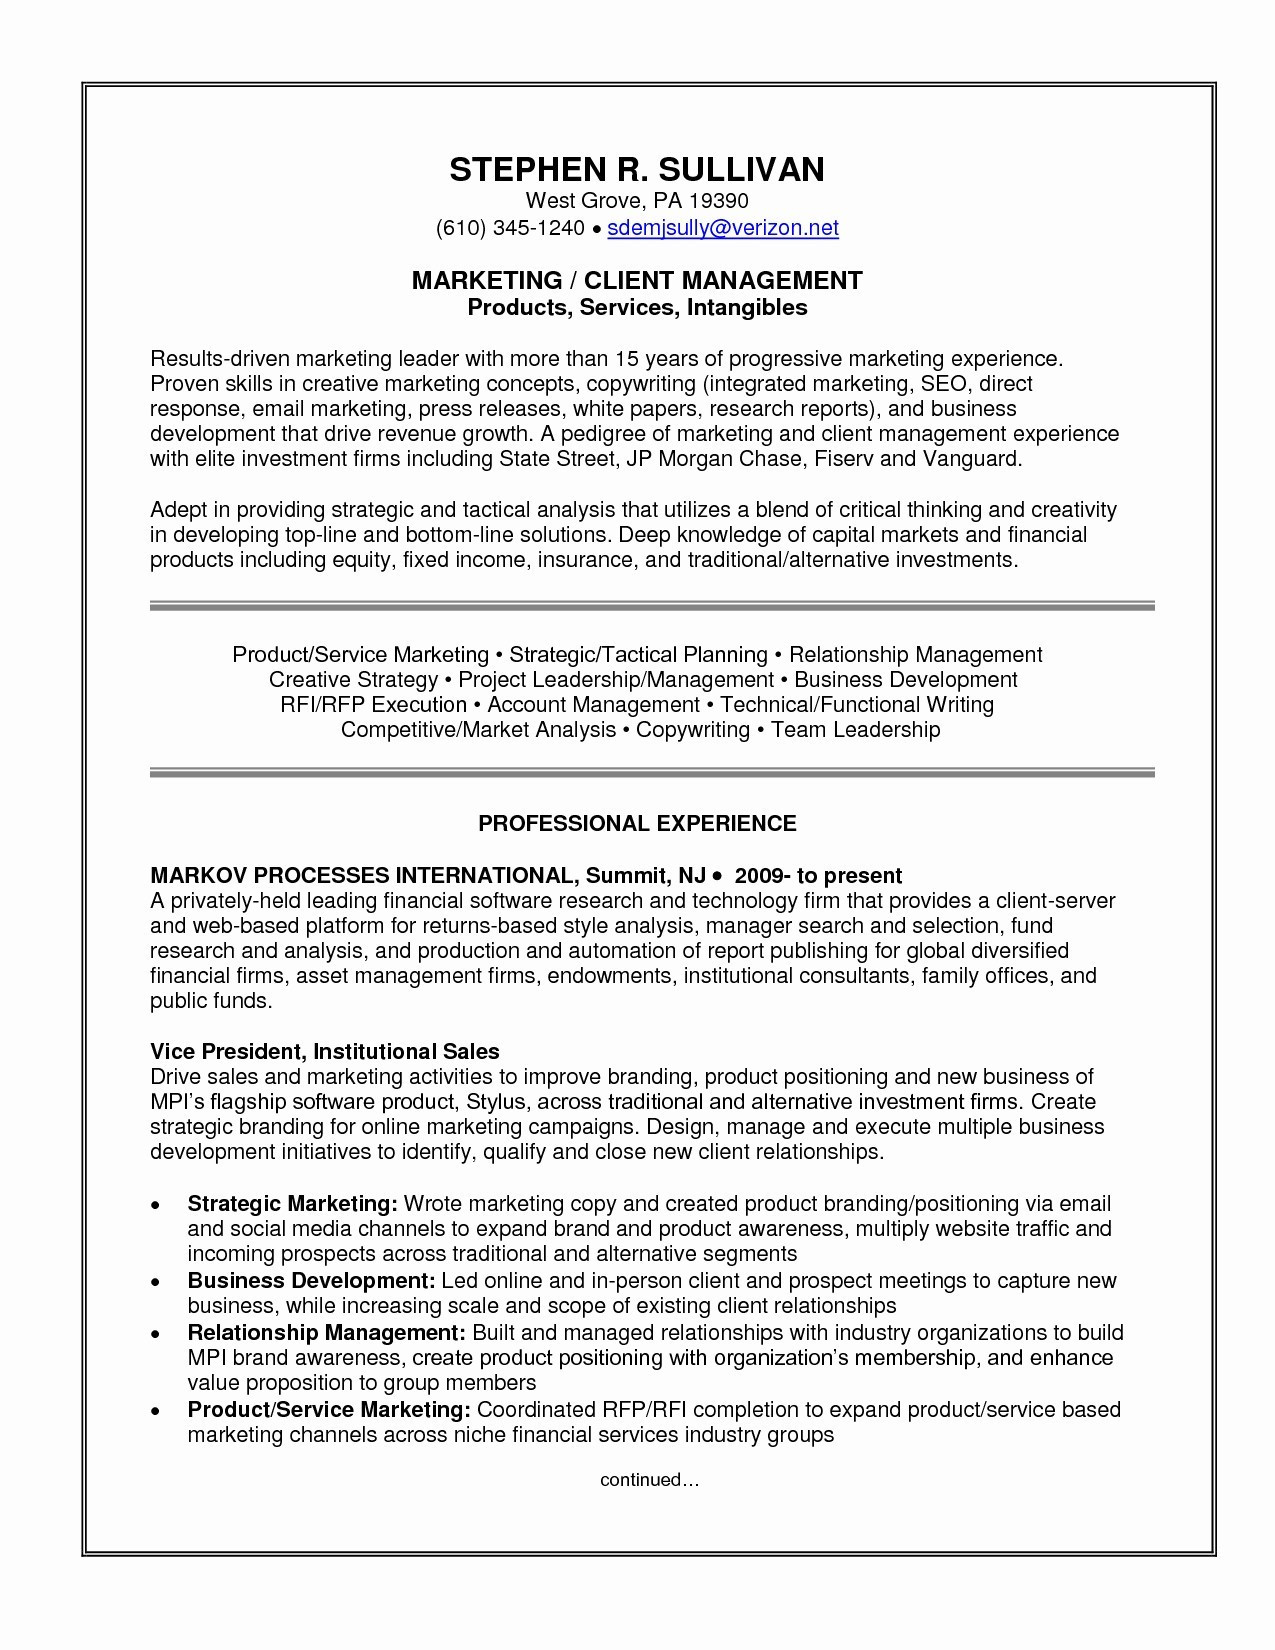 Professional Business Resume - Experienced Professional Resume Template Best top Resume Template